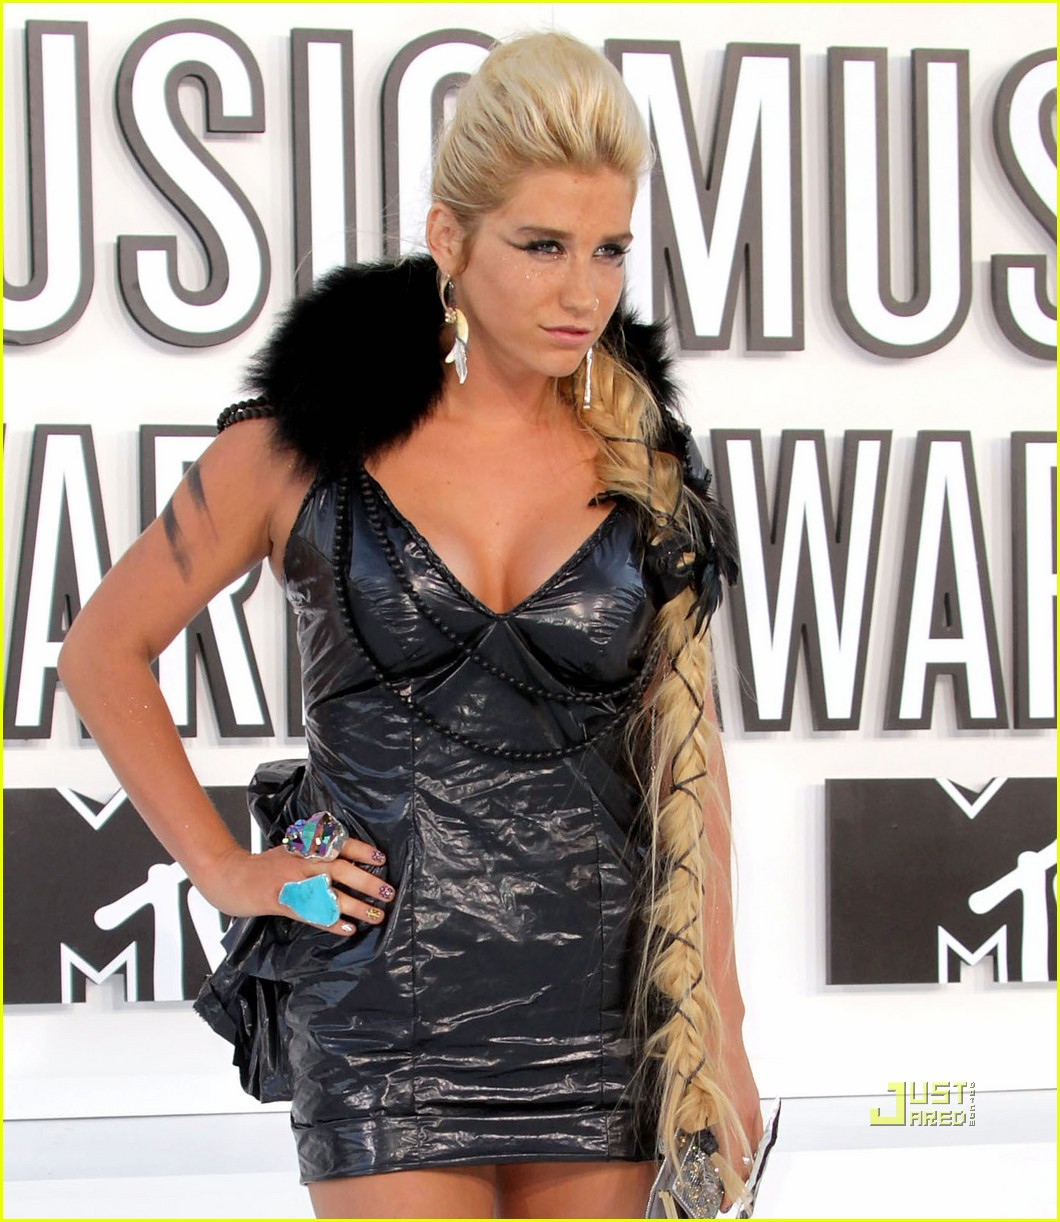 http://2.bp.blogspot.com/_TydAuxB_Z4U/TJJA6LjVz4I/AAAAAAAAAEs/WTSK-04bp4Y/s1600/kesha-vmas-garbage-bag-dress-02.jpg